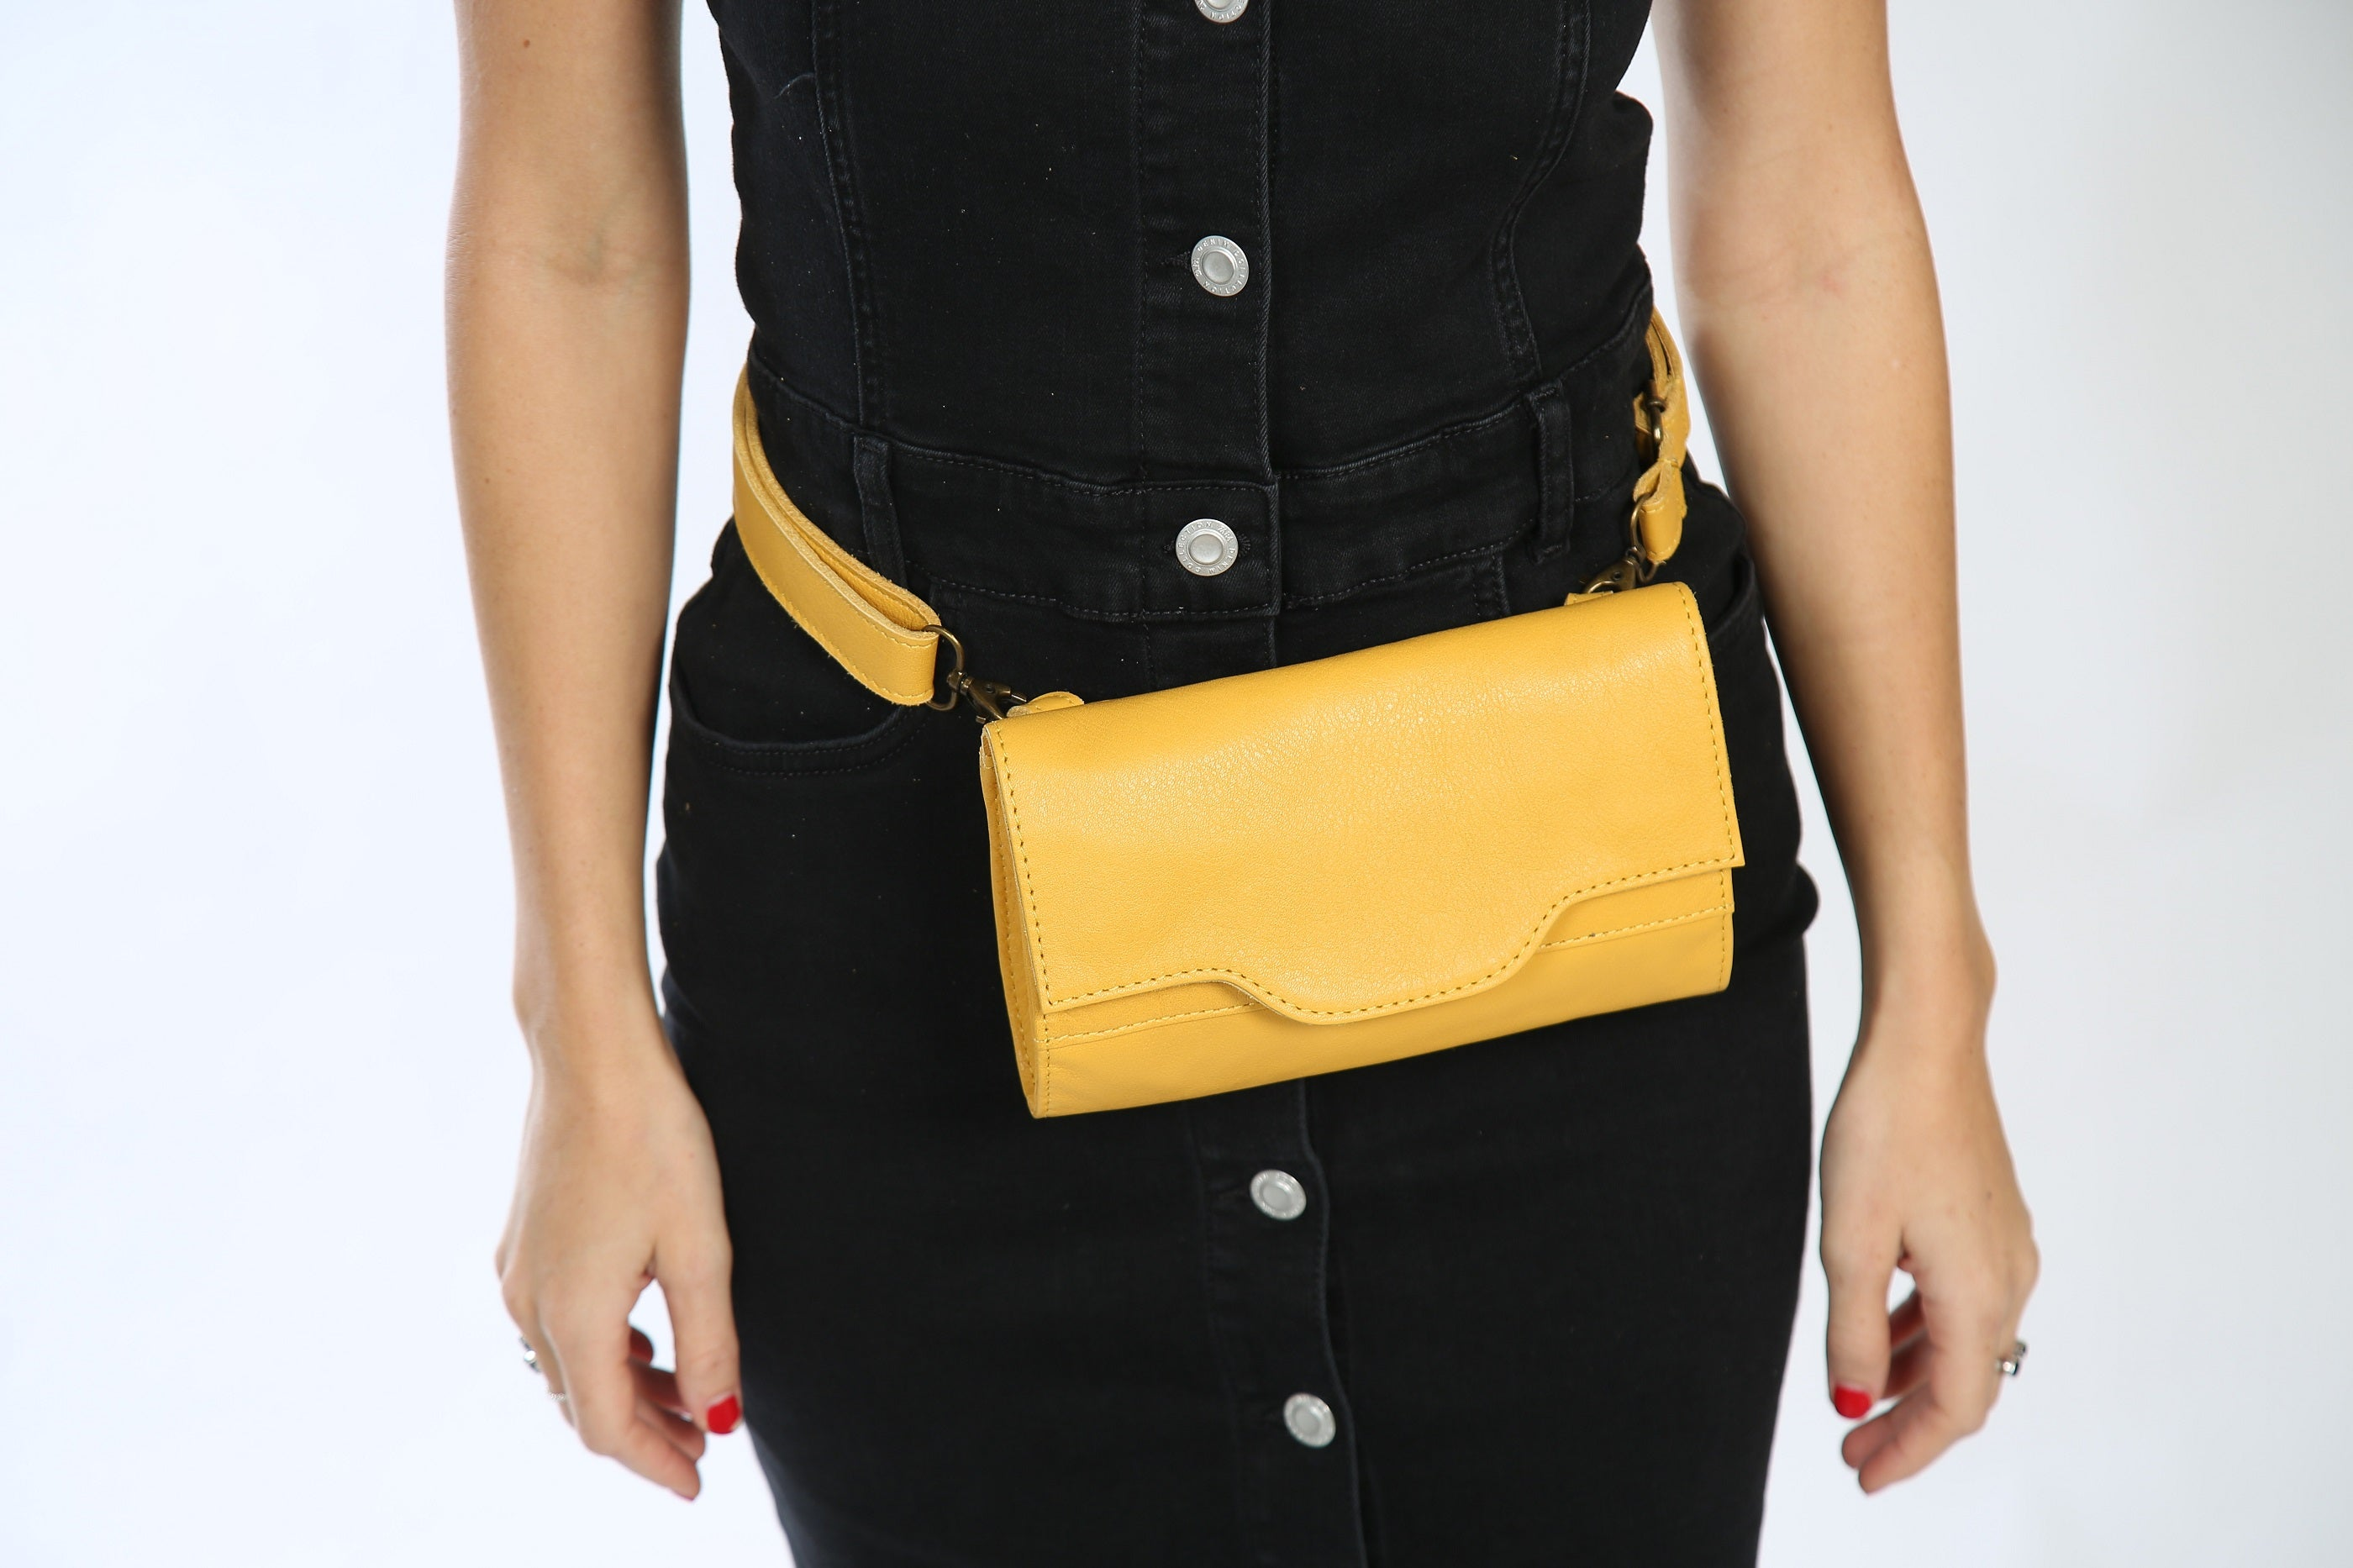 Yellow Leather Fanny Pack - Nymphaea design